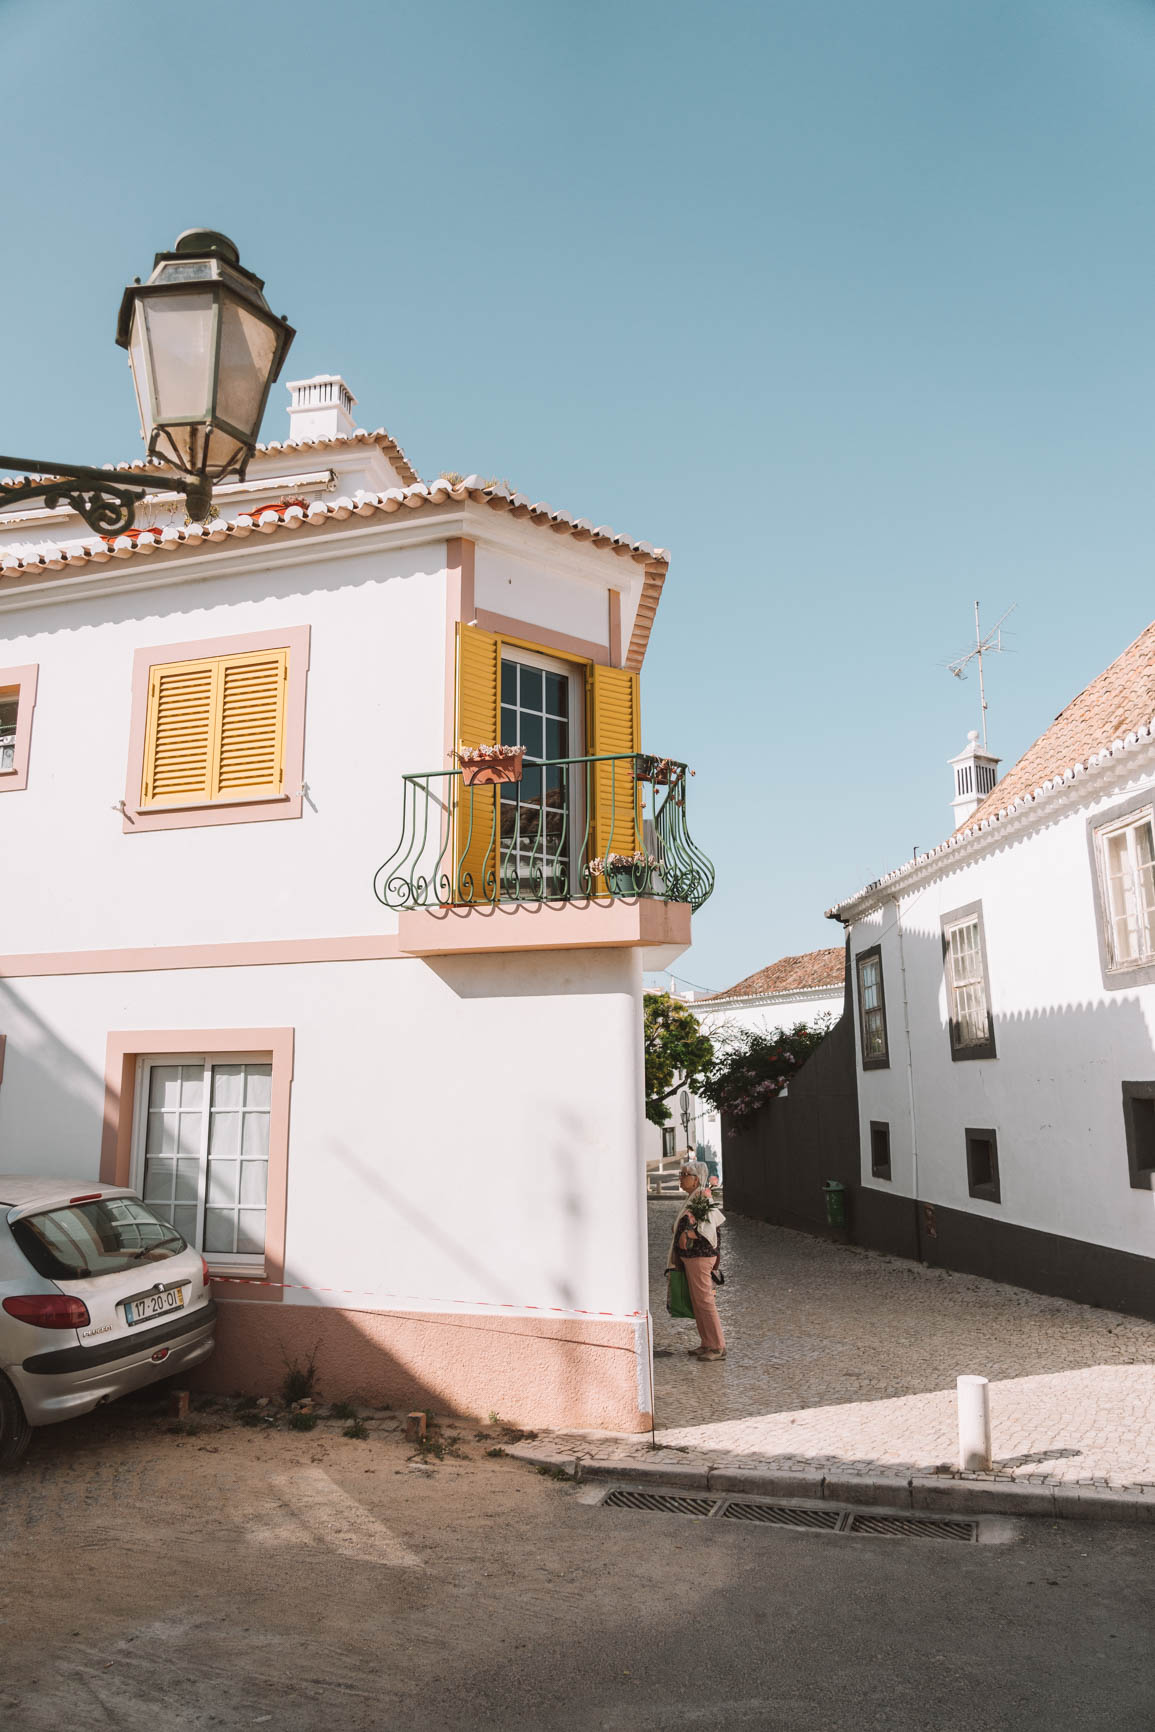 Lagos Old Town - Fun things to do in Lagos Algarve Portugal #Portugal #Europe